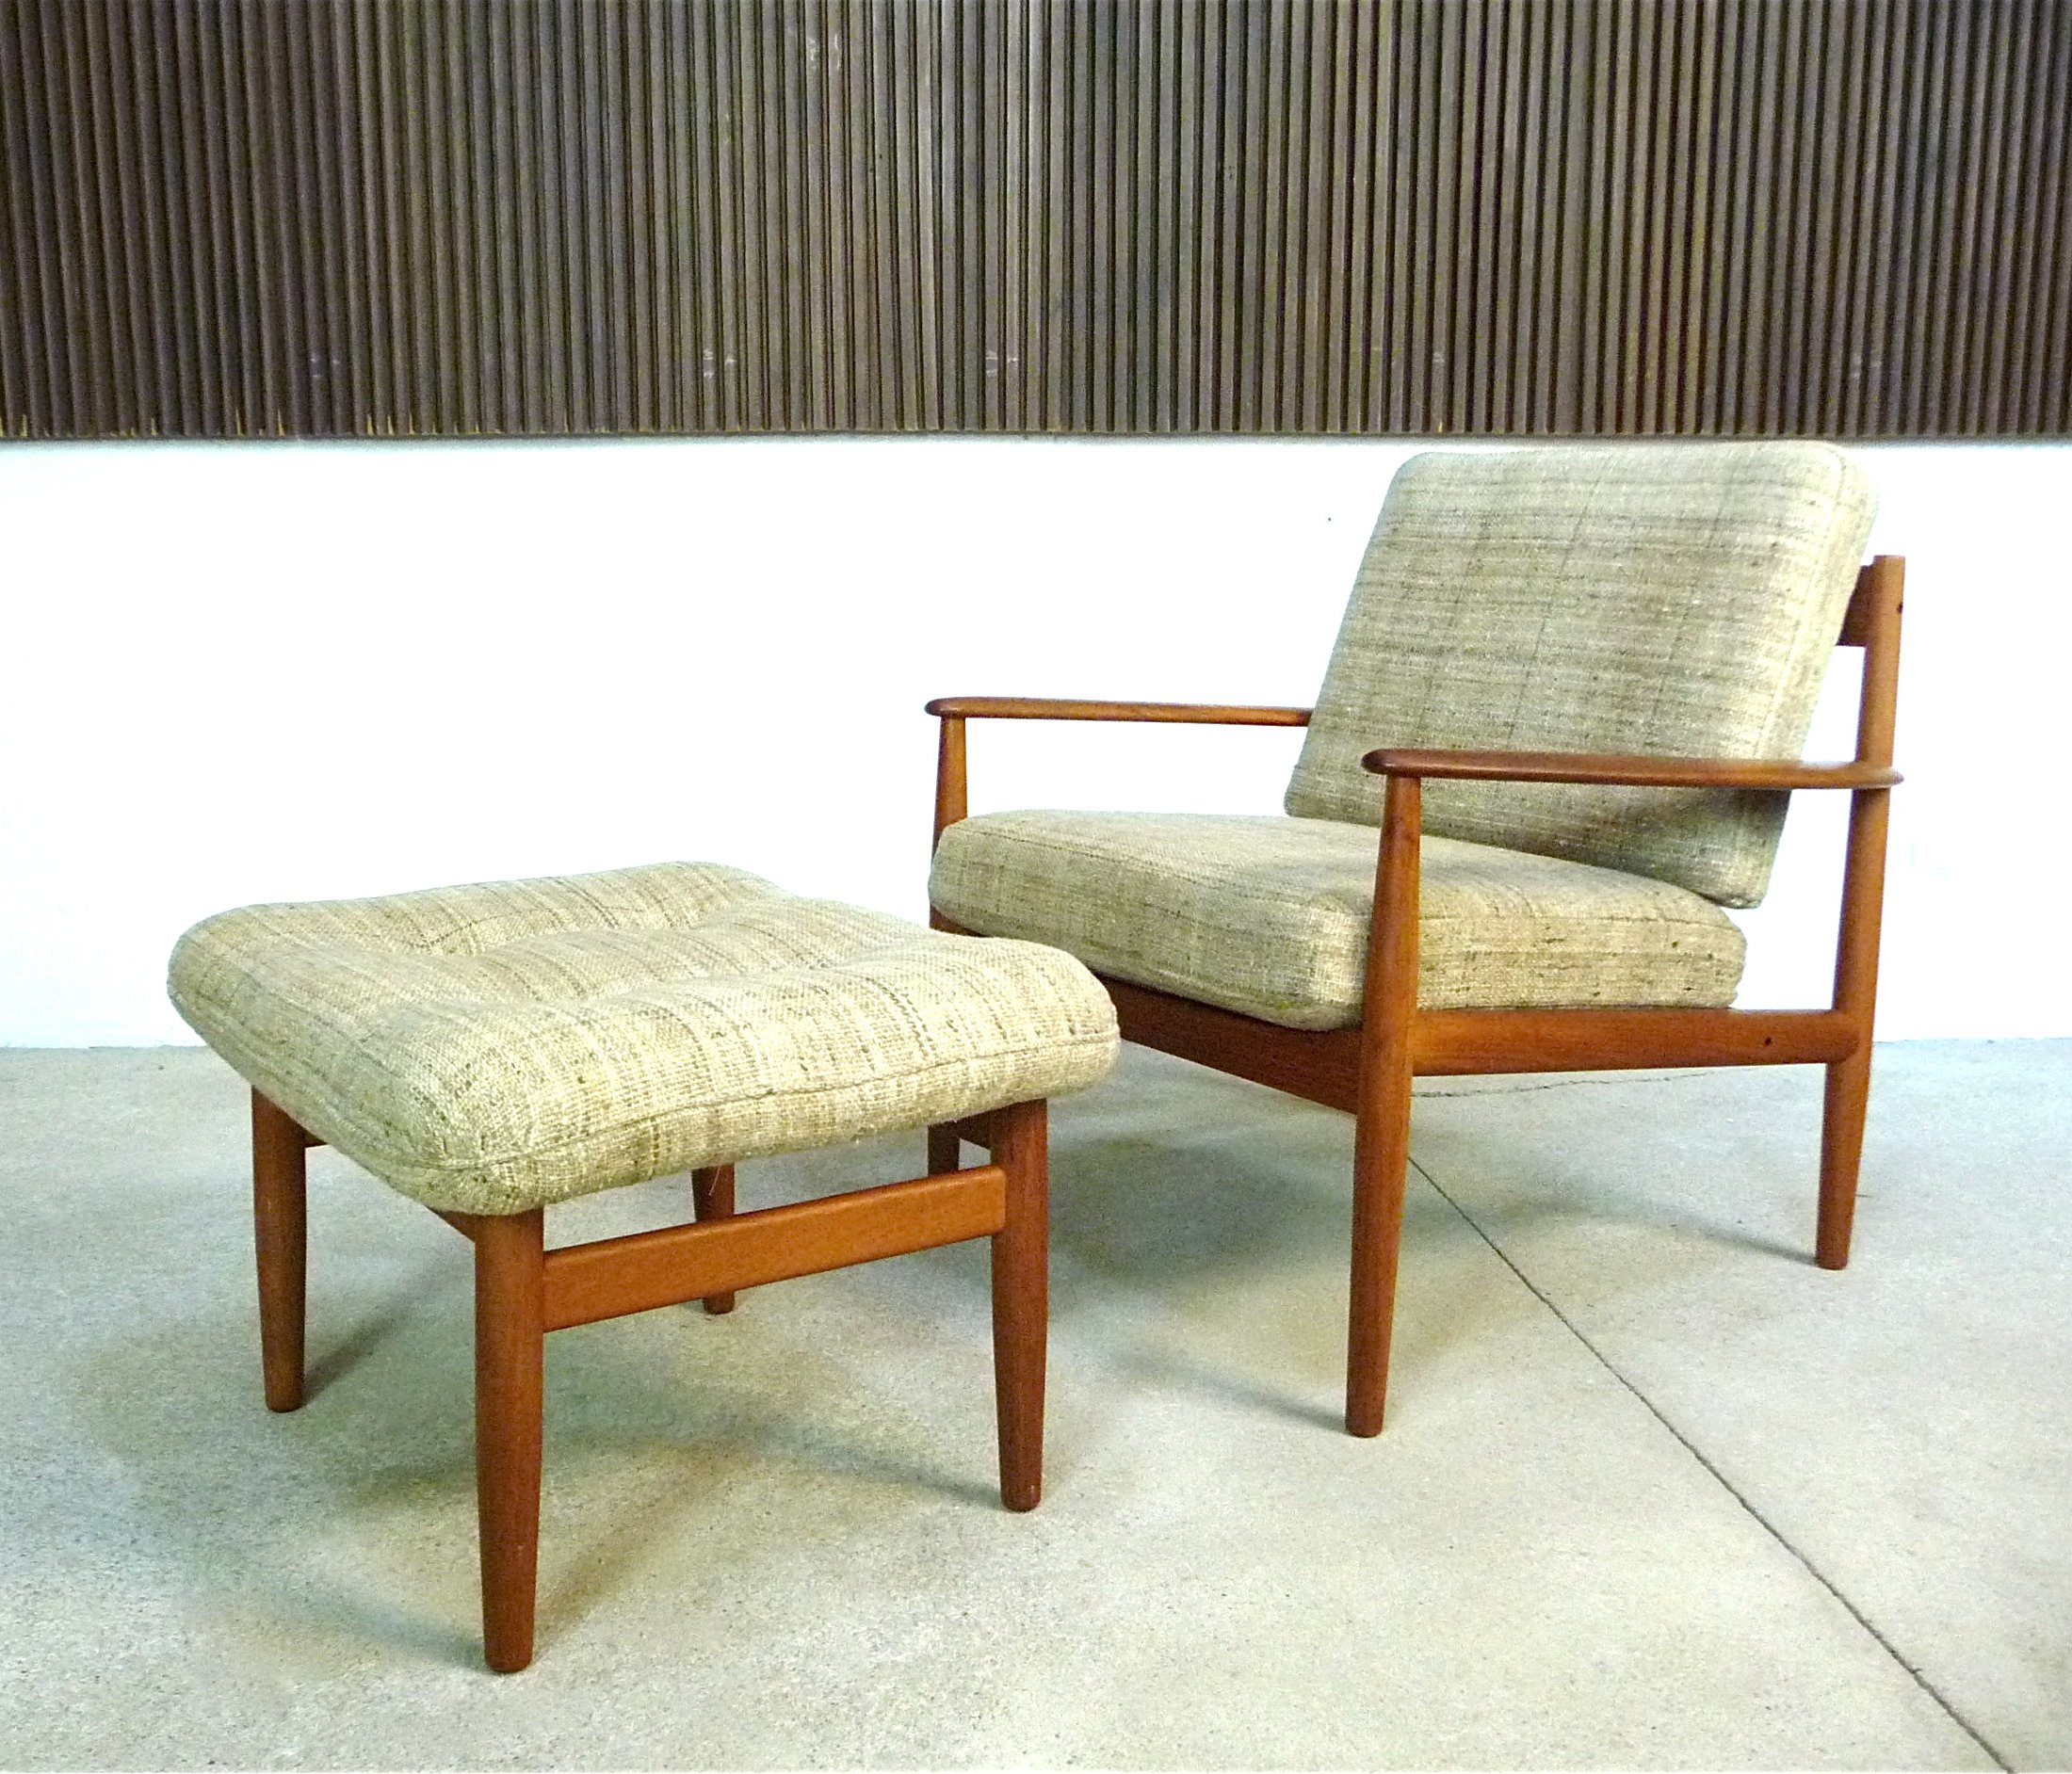 Phenomenal Danish Teak Wool Easy Chair Ottoman By Grete Jalk For Cado 1960S Pabps2019 Chair Design Images Pabps2019Com